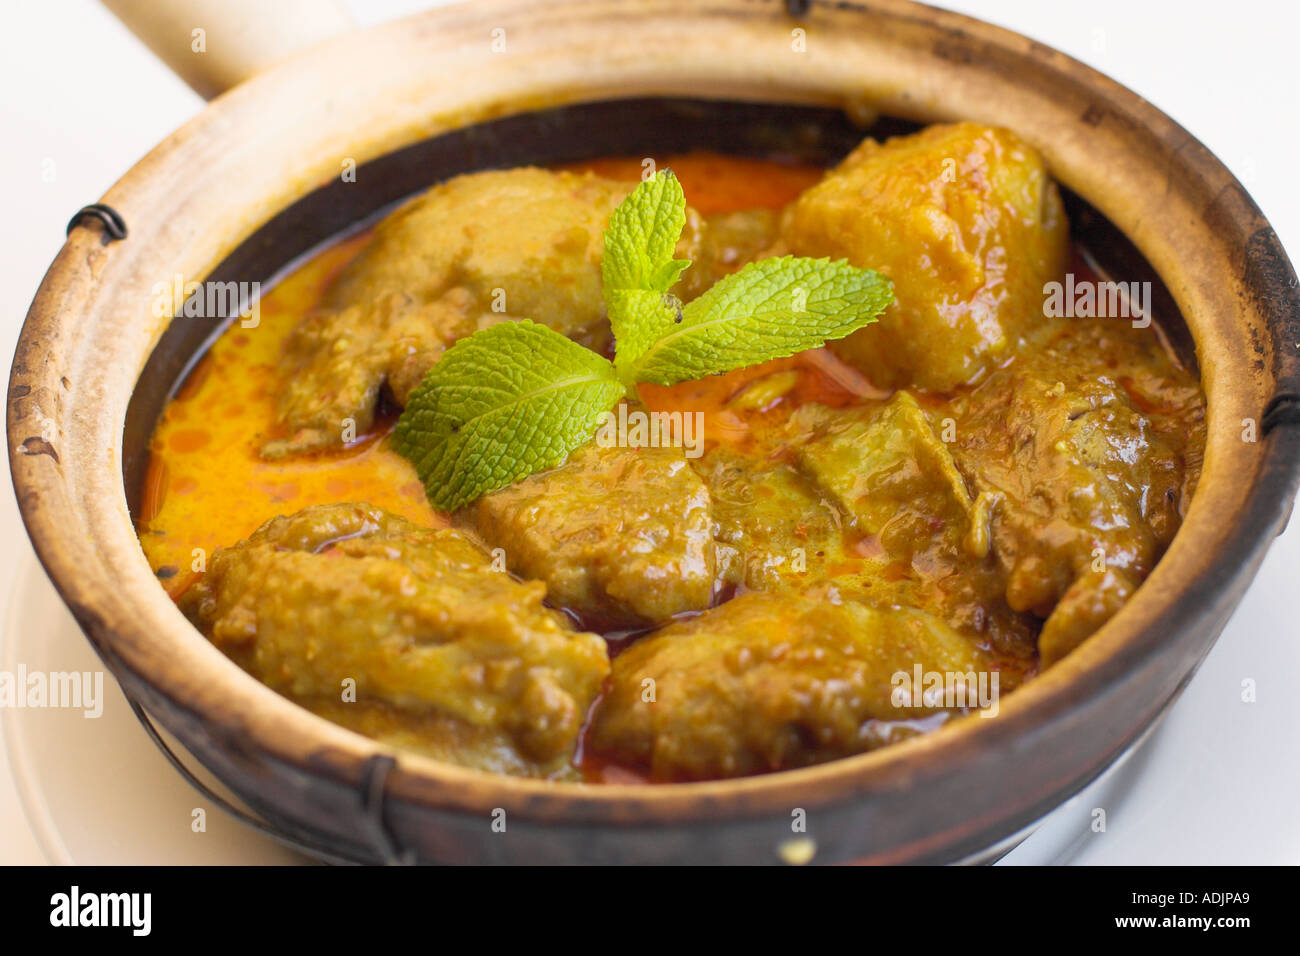 380a8320 Chicken Red Curry with Patatoes in Claypot Stock Photo: 4386472 - Alamy